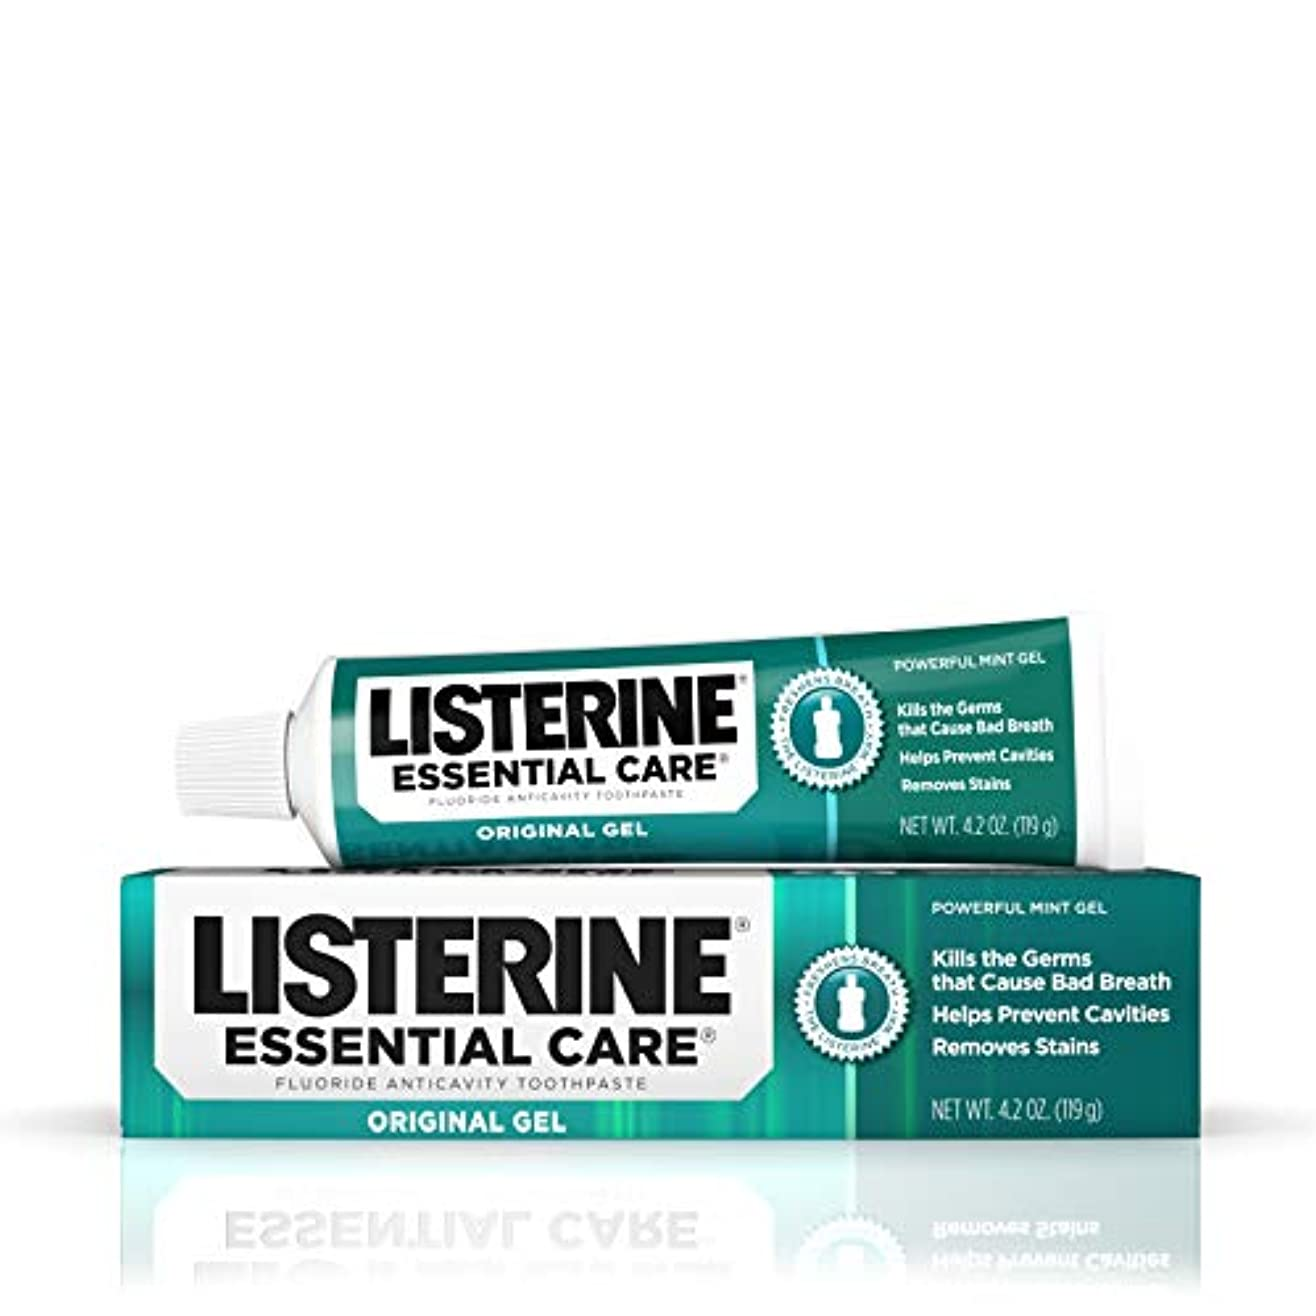 ボード廃棄図書館海外直送品Listerine Essential Care Toothpaste Gel Original, Powerful Mint 4.2 oz by Listerine